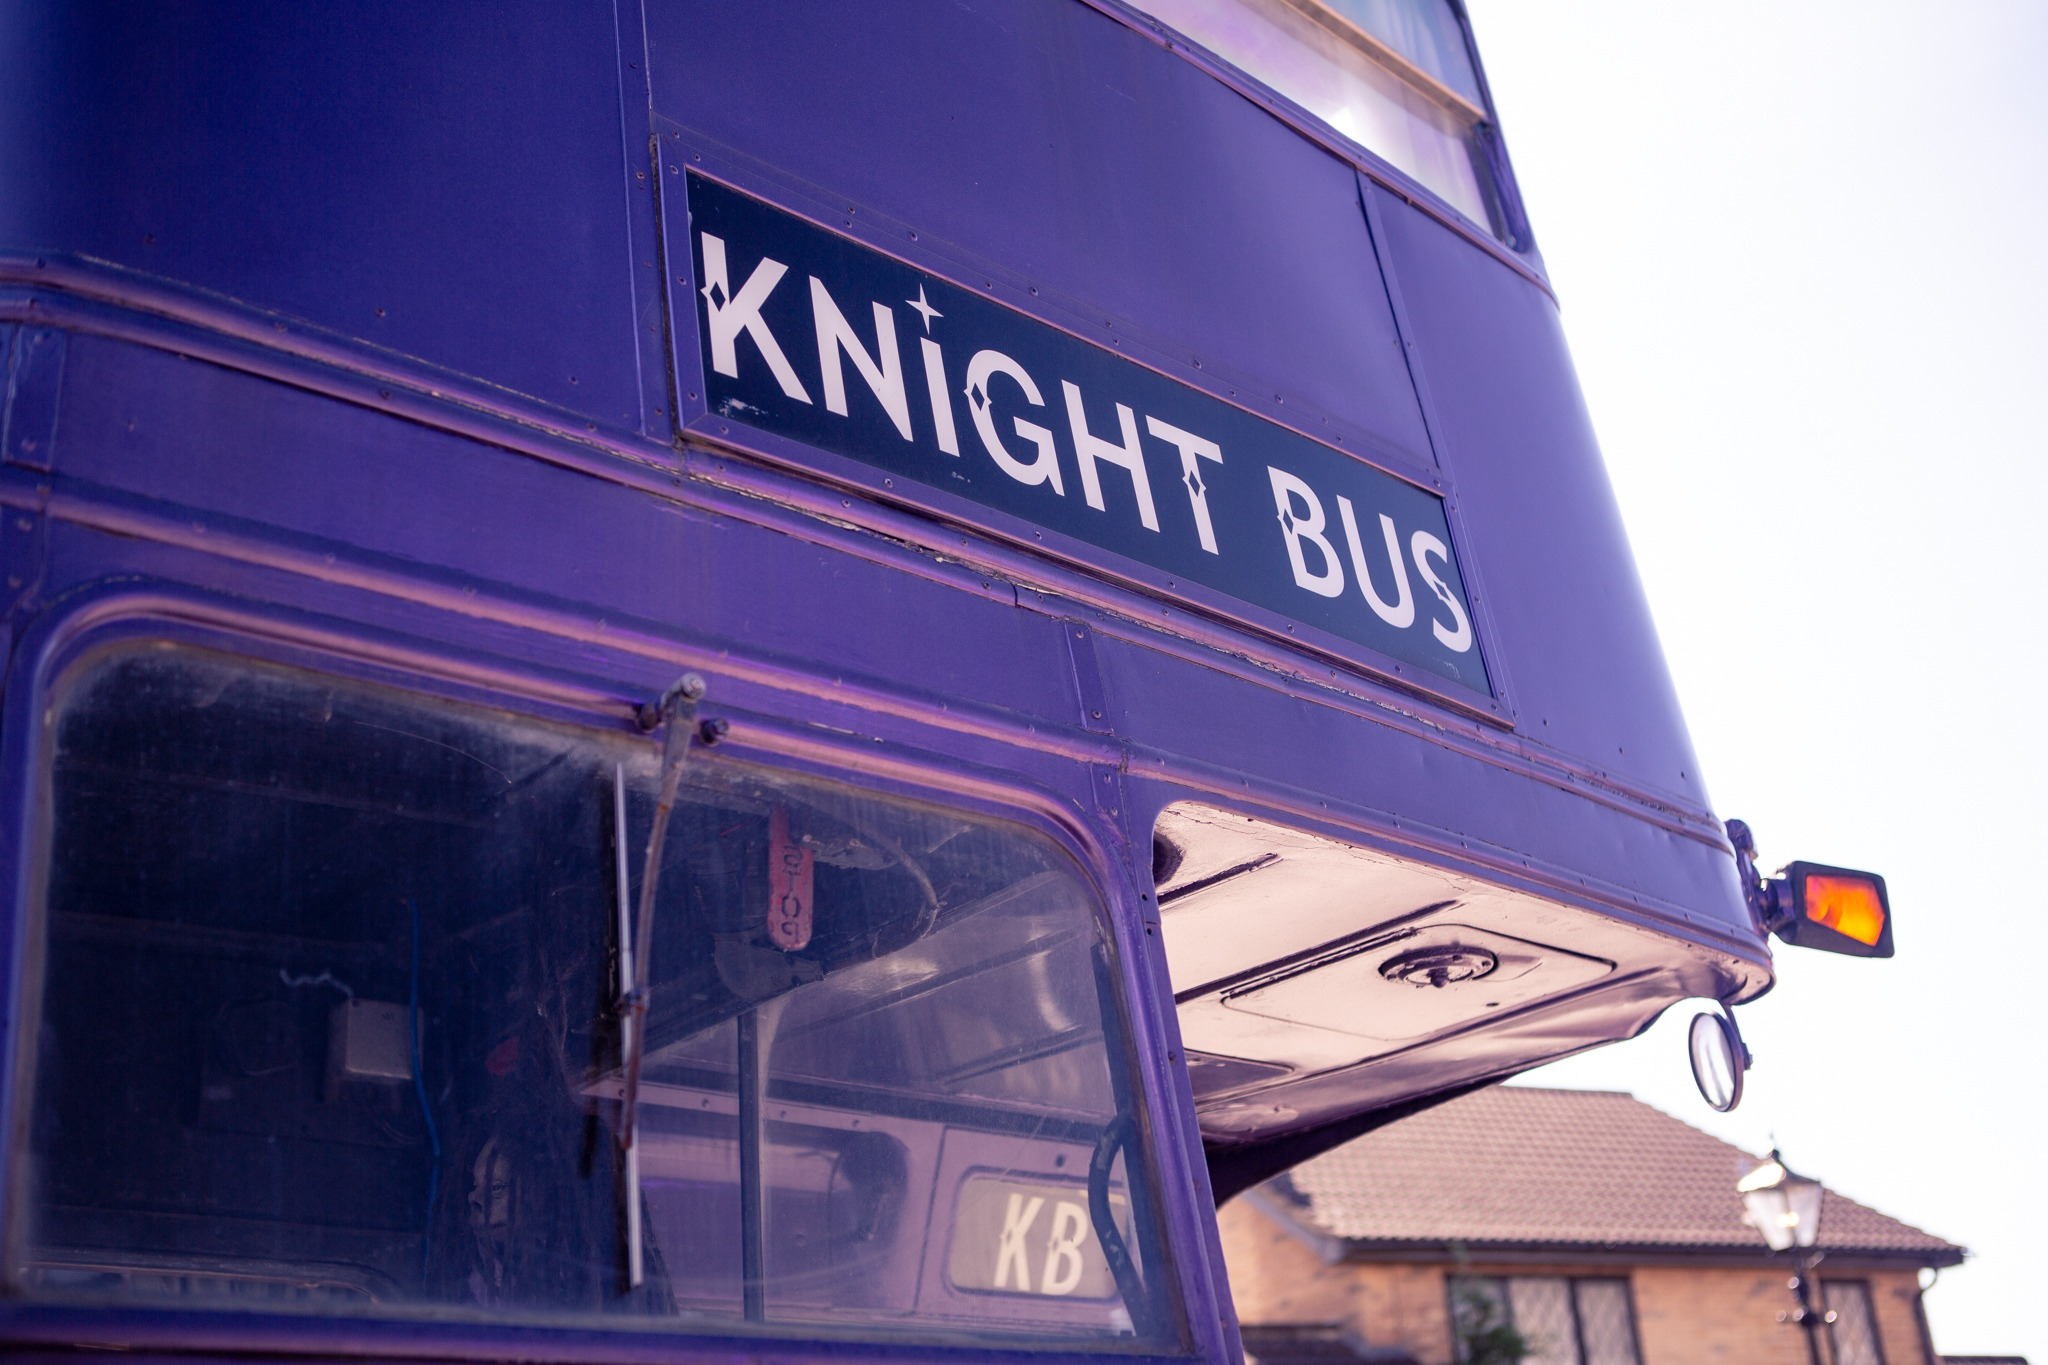 Close up of the Knight Bus